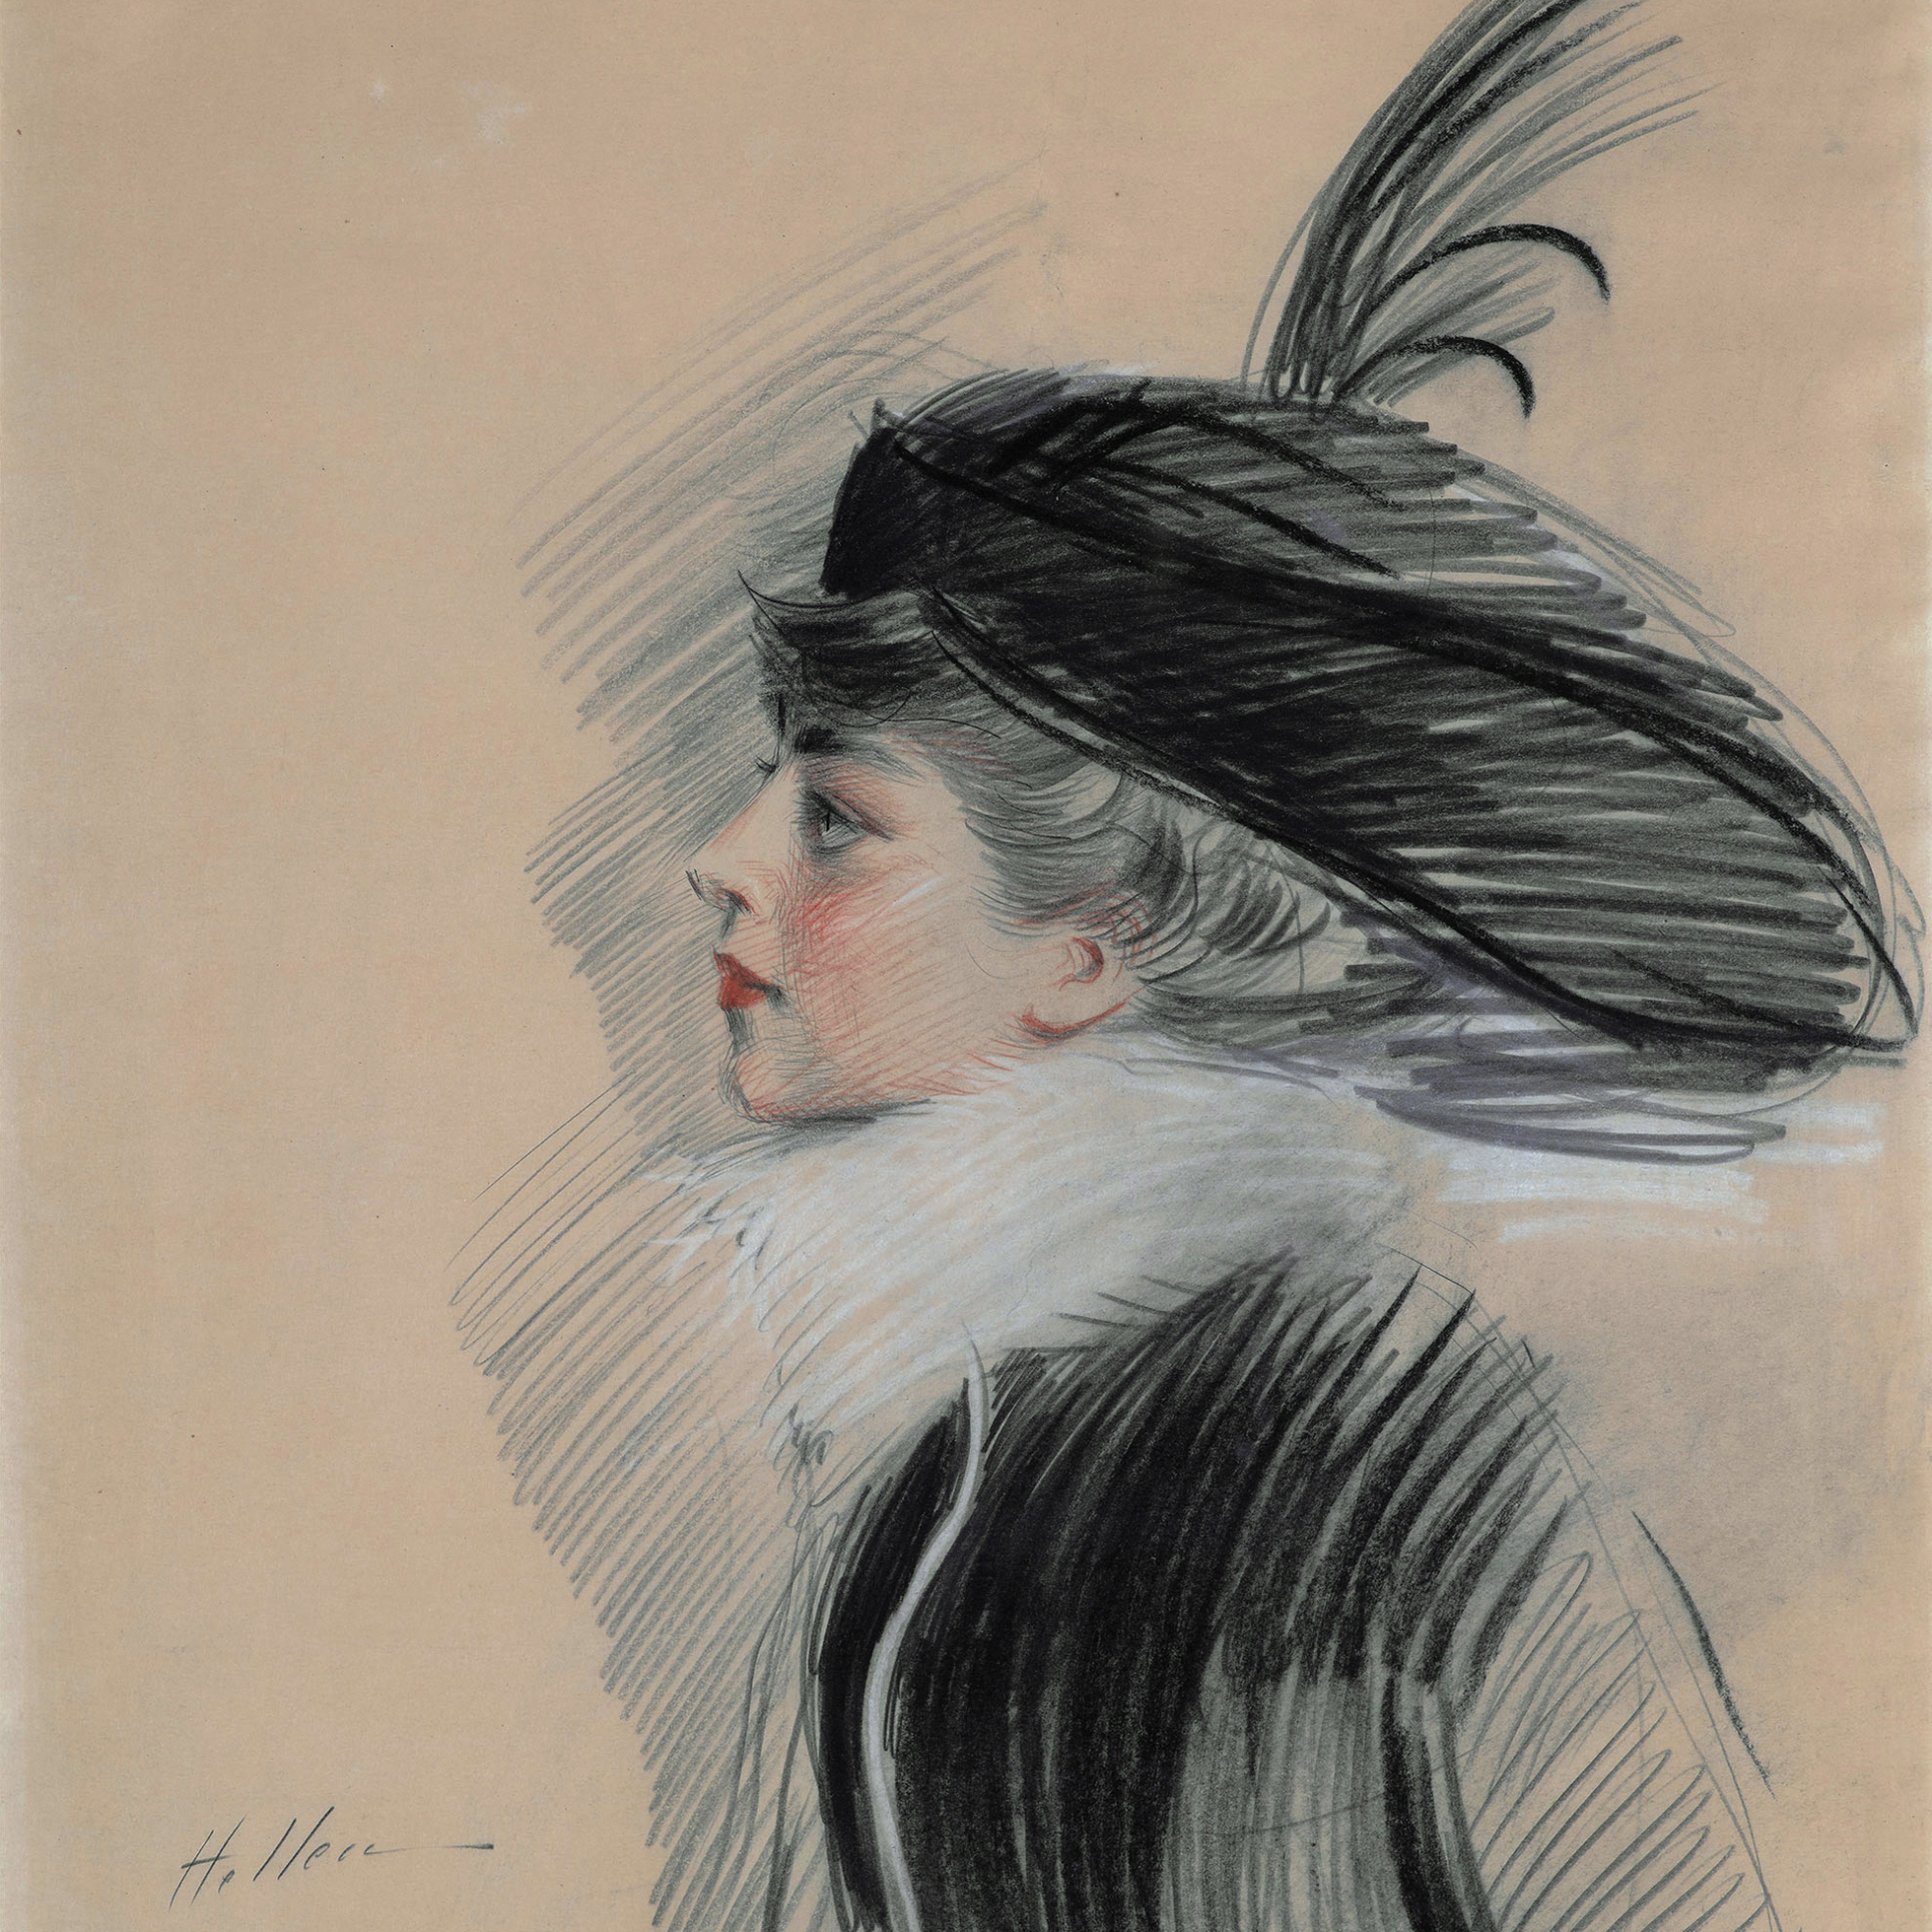 A black and white pastel drawing of a woman facing to the left, wearing a large hat topped with feathers, a black coat and a fur scarf.